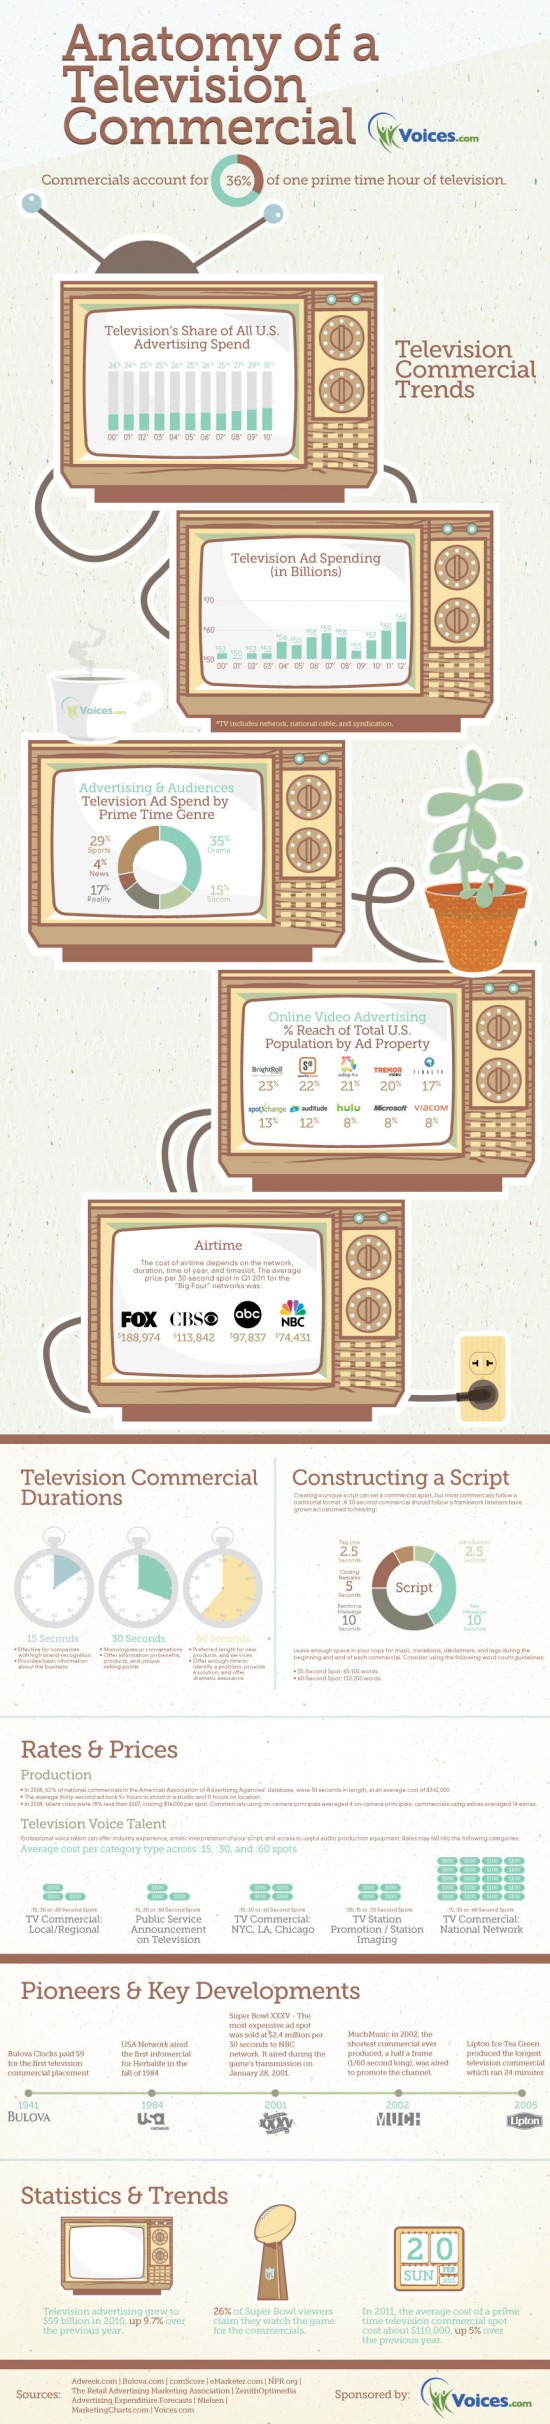 Anatomy-Of-A-Television-Commercial-infographic